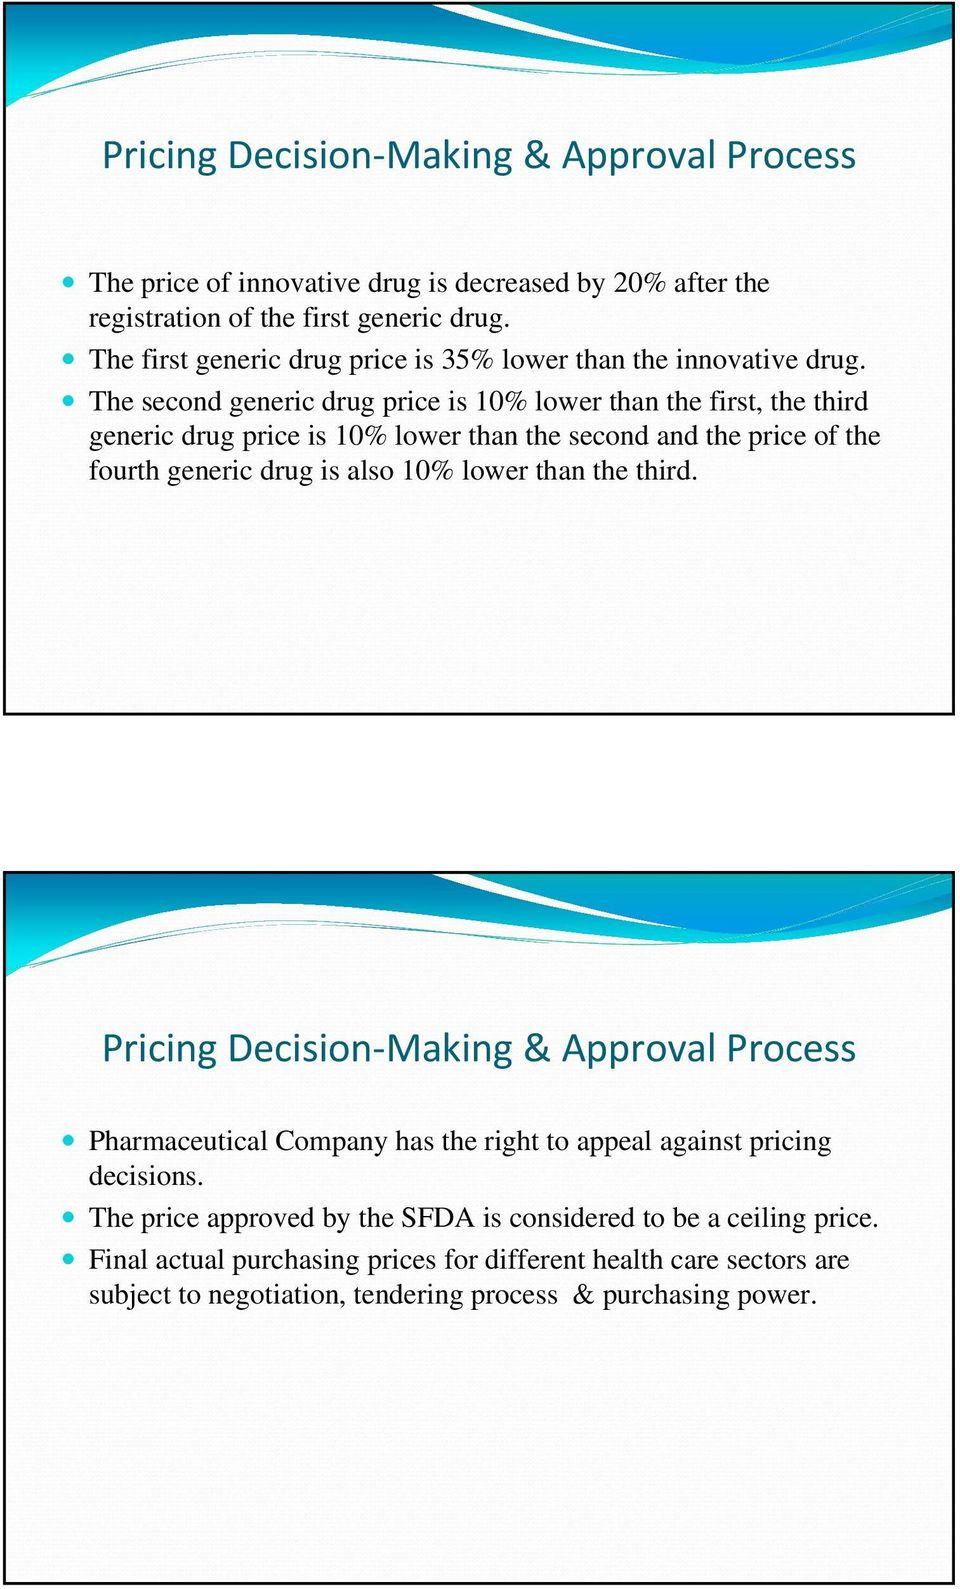 The second generic drug price is 10% lower than the first, the third generic drug price is 10% lower than the second and the price of the fourth generic drug is also 10% lower